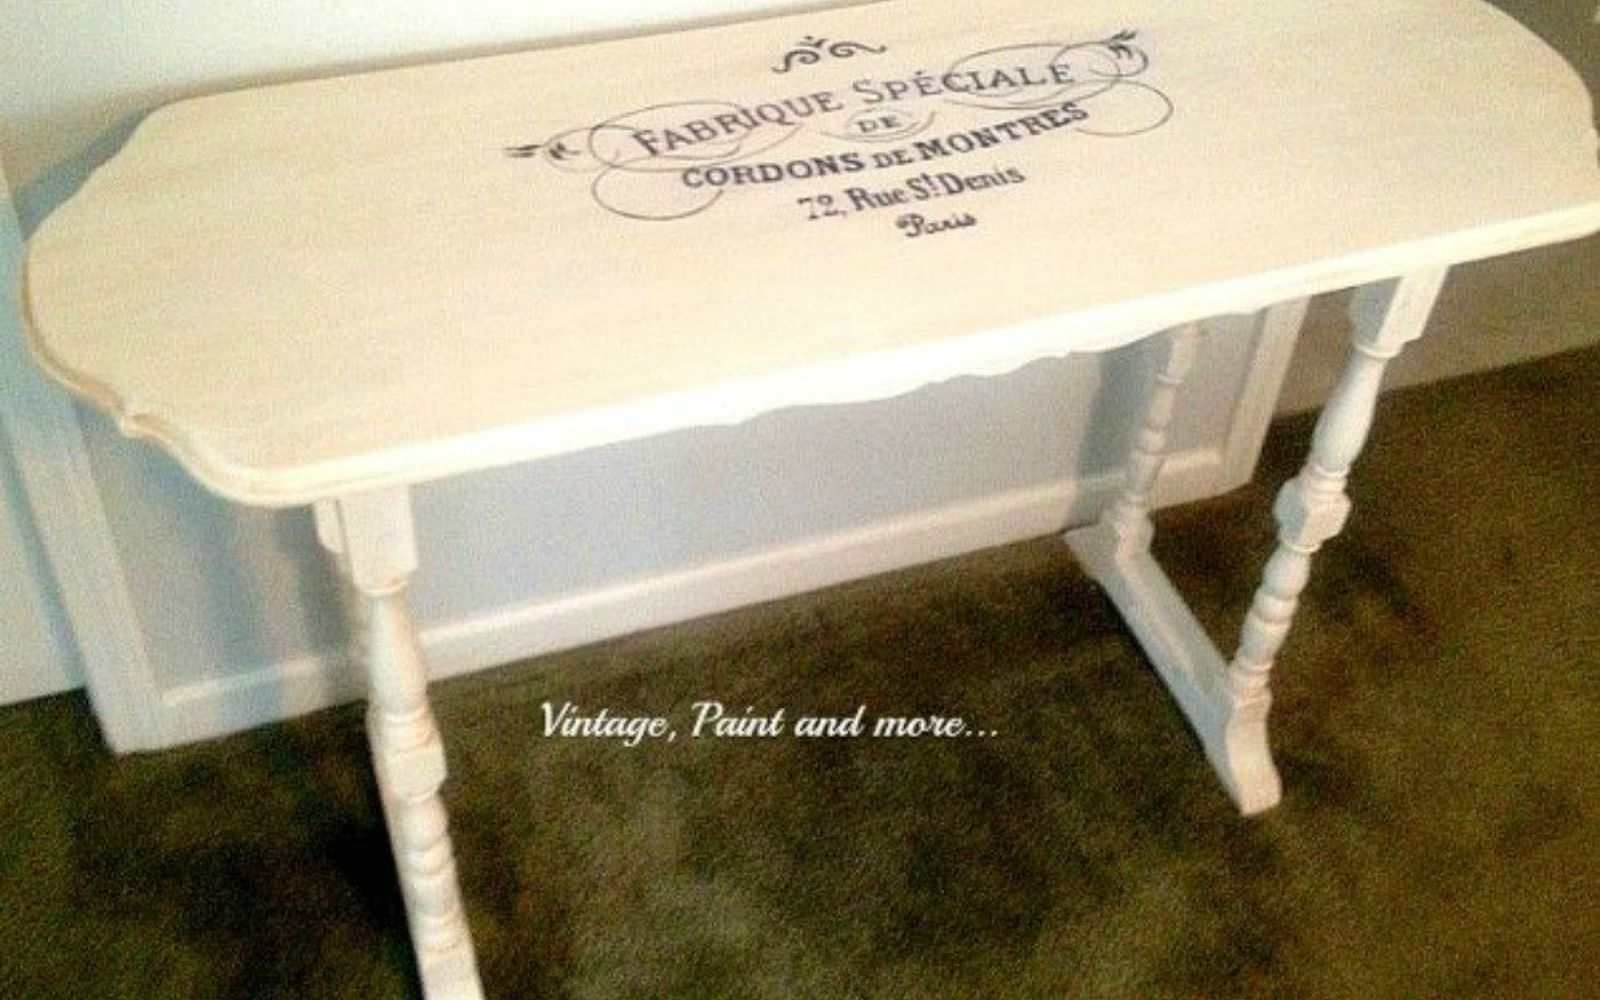 s 12 wildly creative ways to use your old sewing table, painted furniture, Stencil it with calligraphy